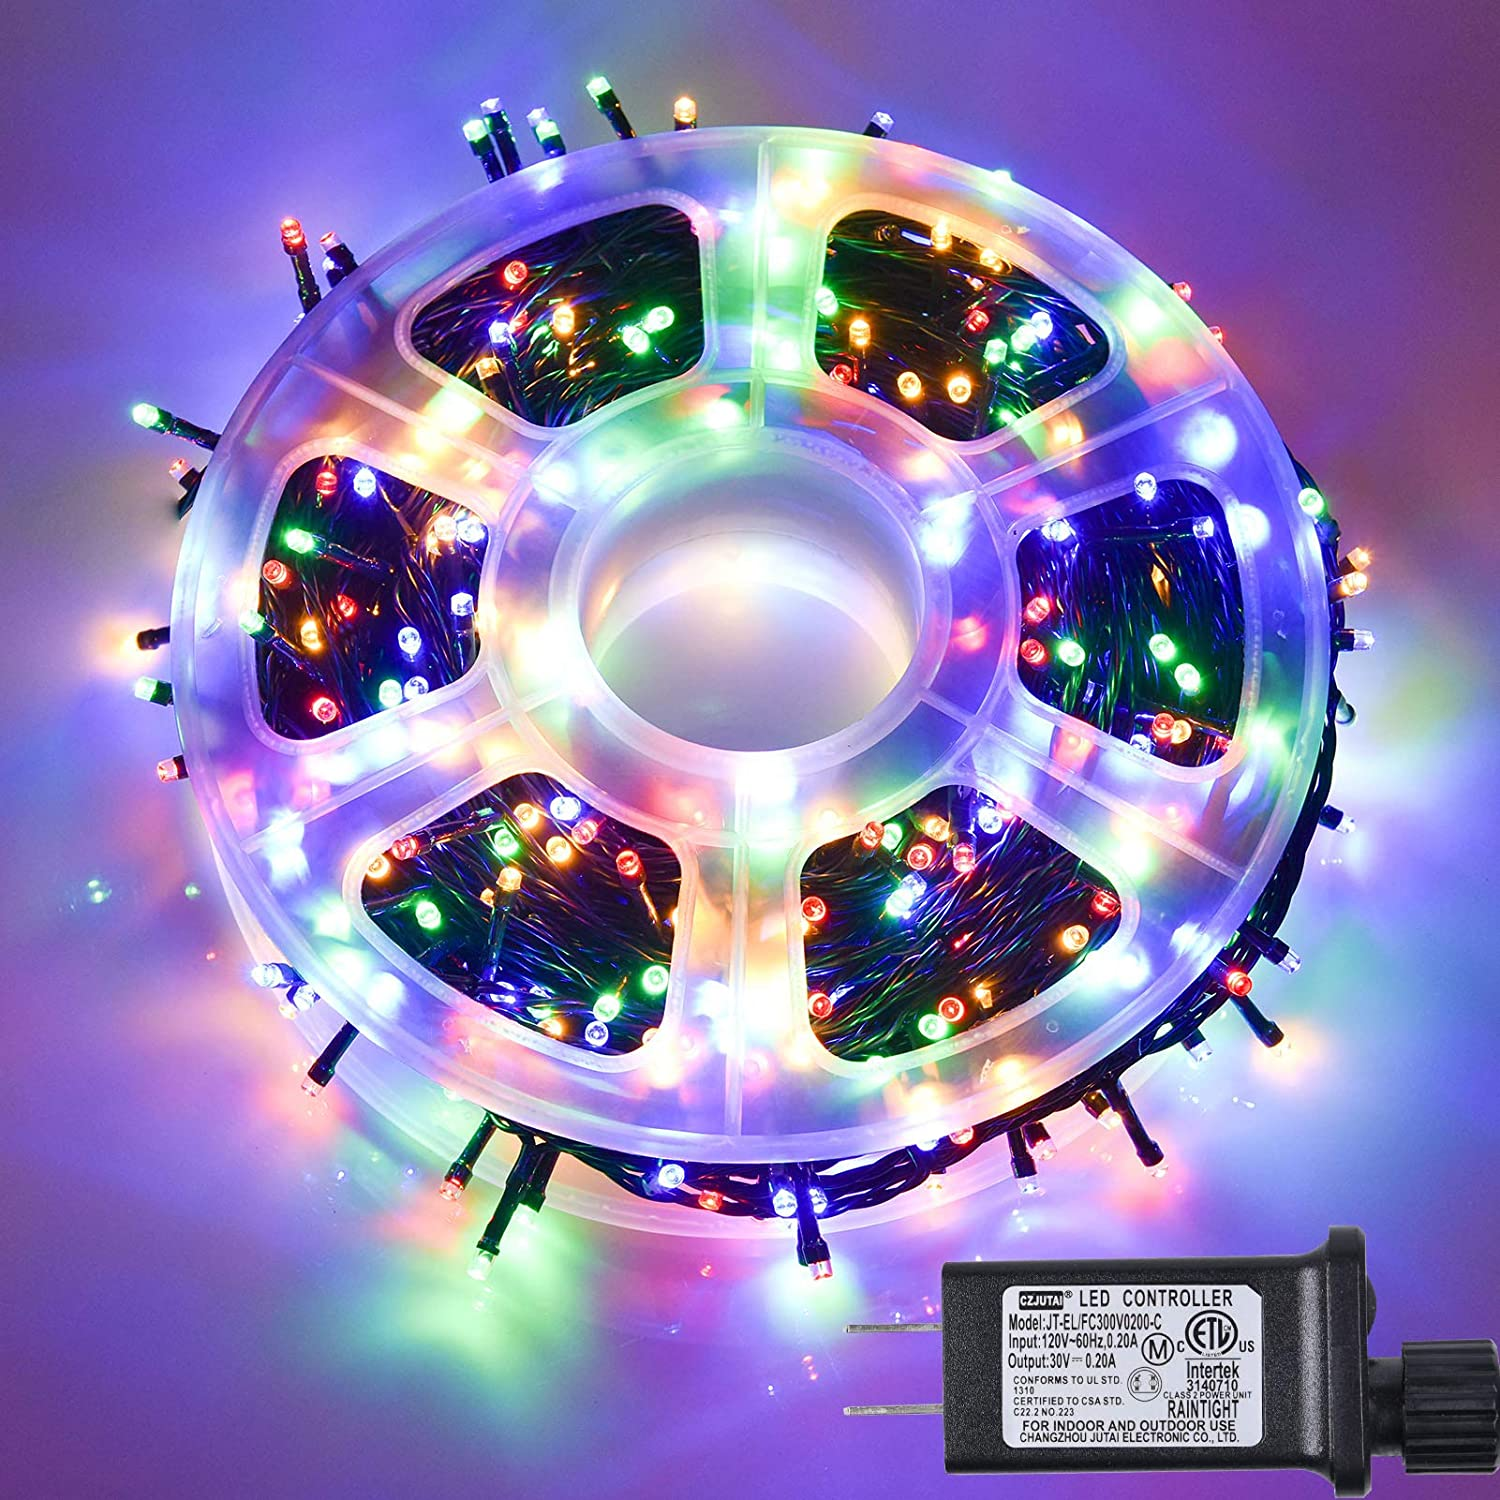 500 LED 164FT Fairy String Lights Plug in, Waterproof Christmas Lights with 8 Lighting Modes for Indoor, Outdoor, Bedroom, Wedding, Party, Garden, Christmas Tree Decoration (Multicolor)